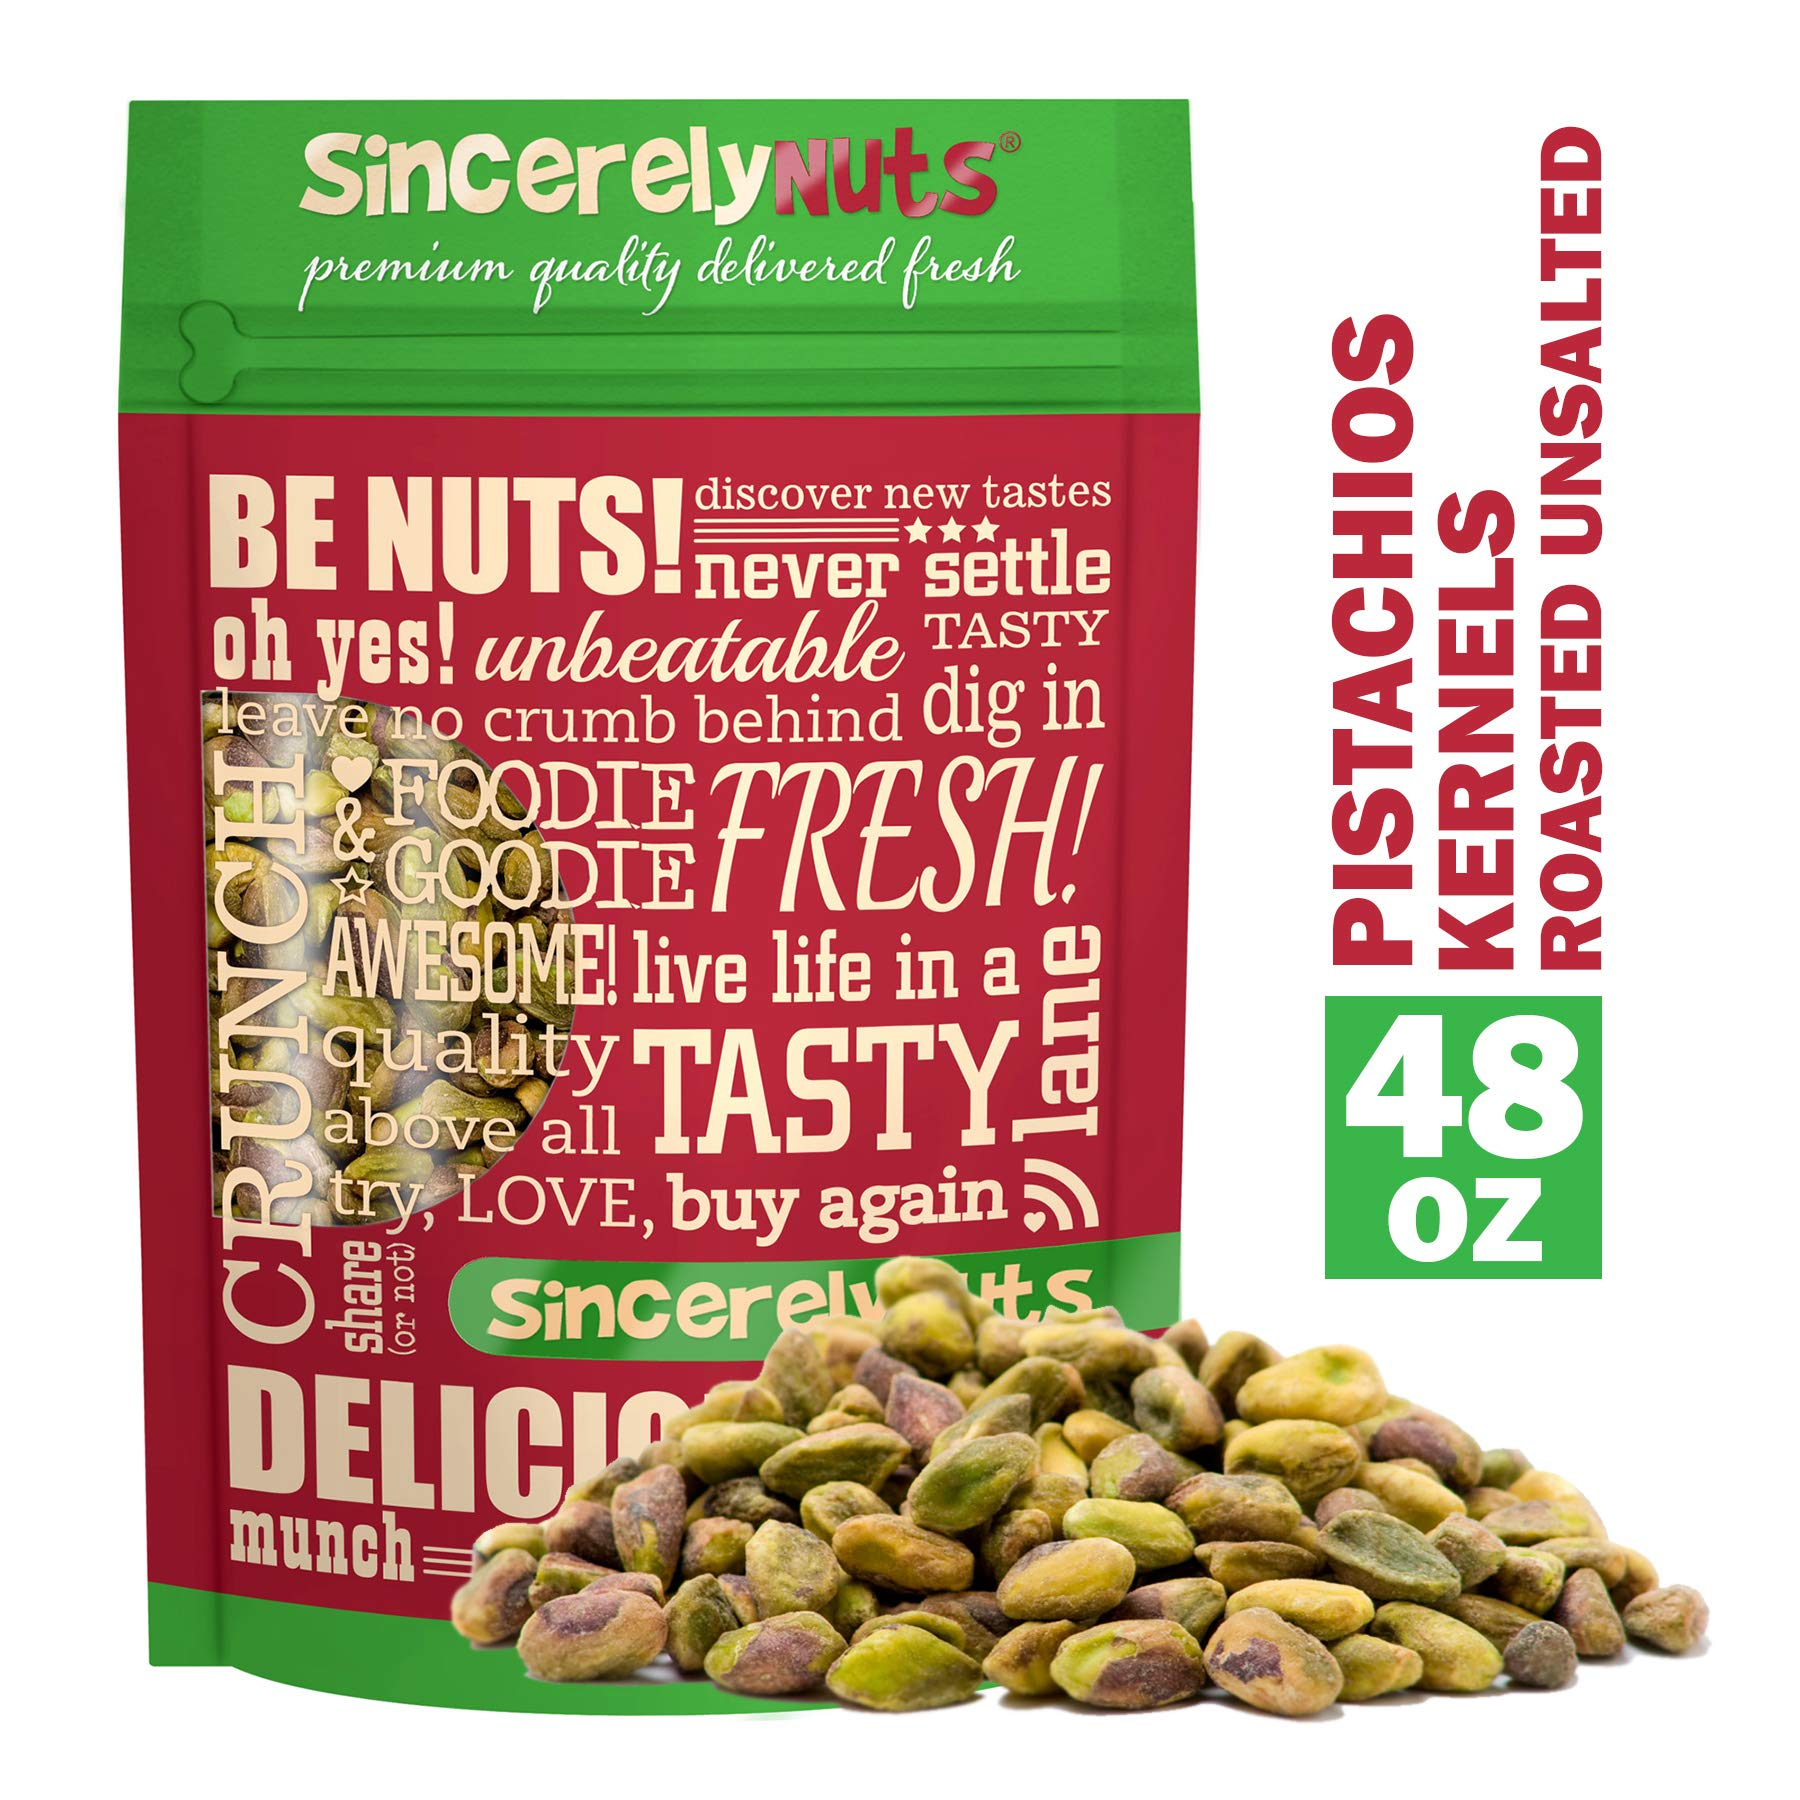 Sincerely Nuts Pistachios Roasted & Unsalted Kernels (No Shell) - 3 Lb. Bag - Healthy Snack Food | Great for Cooking | Source of Fiber, Protein & Vitamins | Gourmet | Vegan, Kosher & Gluten Free